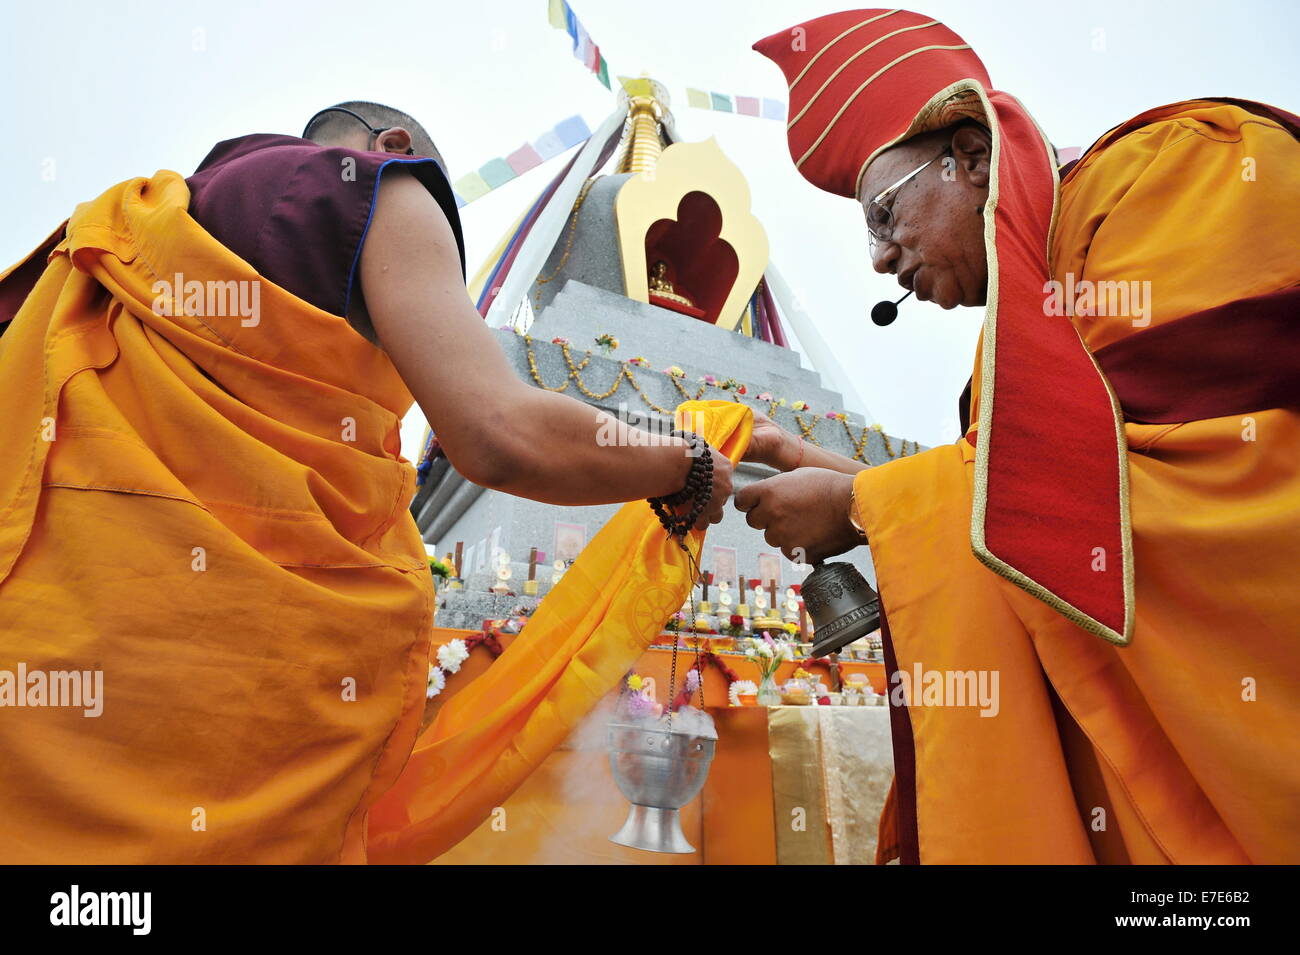 Tenovice, Czech Republic. 14th Sep, 2014. Tenovice Buddhists unveiled their first building in the country in Tenovice, - Stock Image